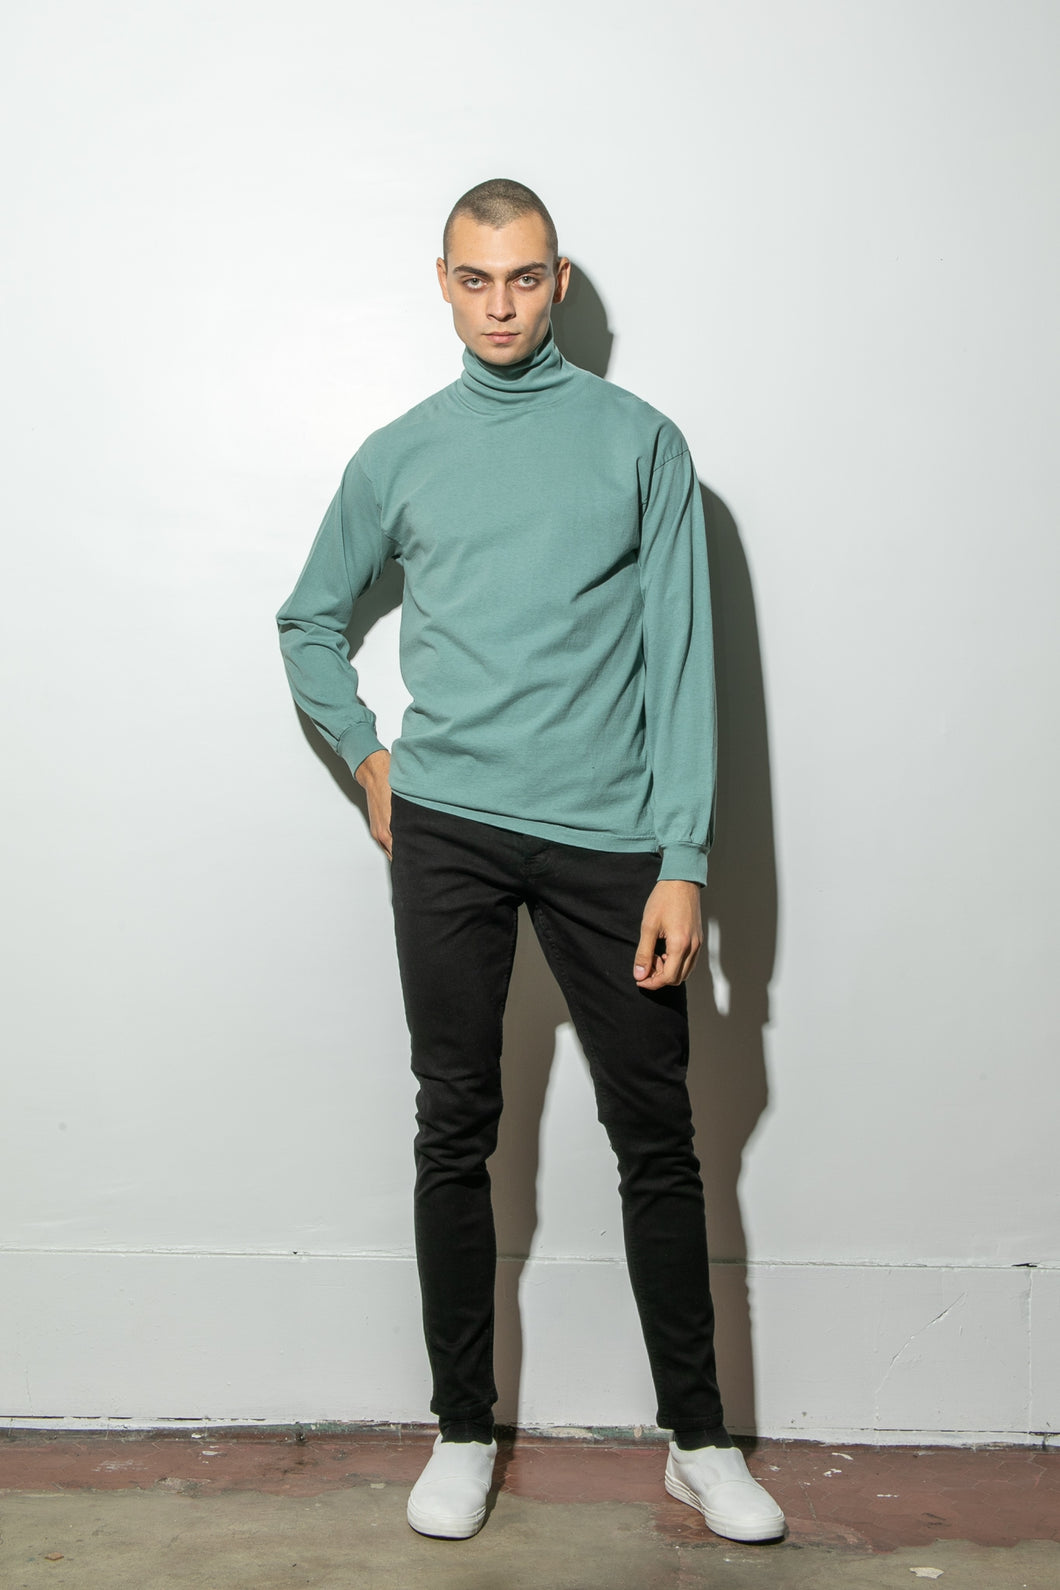 Hawthorne Turtleneck in Atlantic Green by Oak